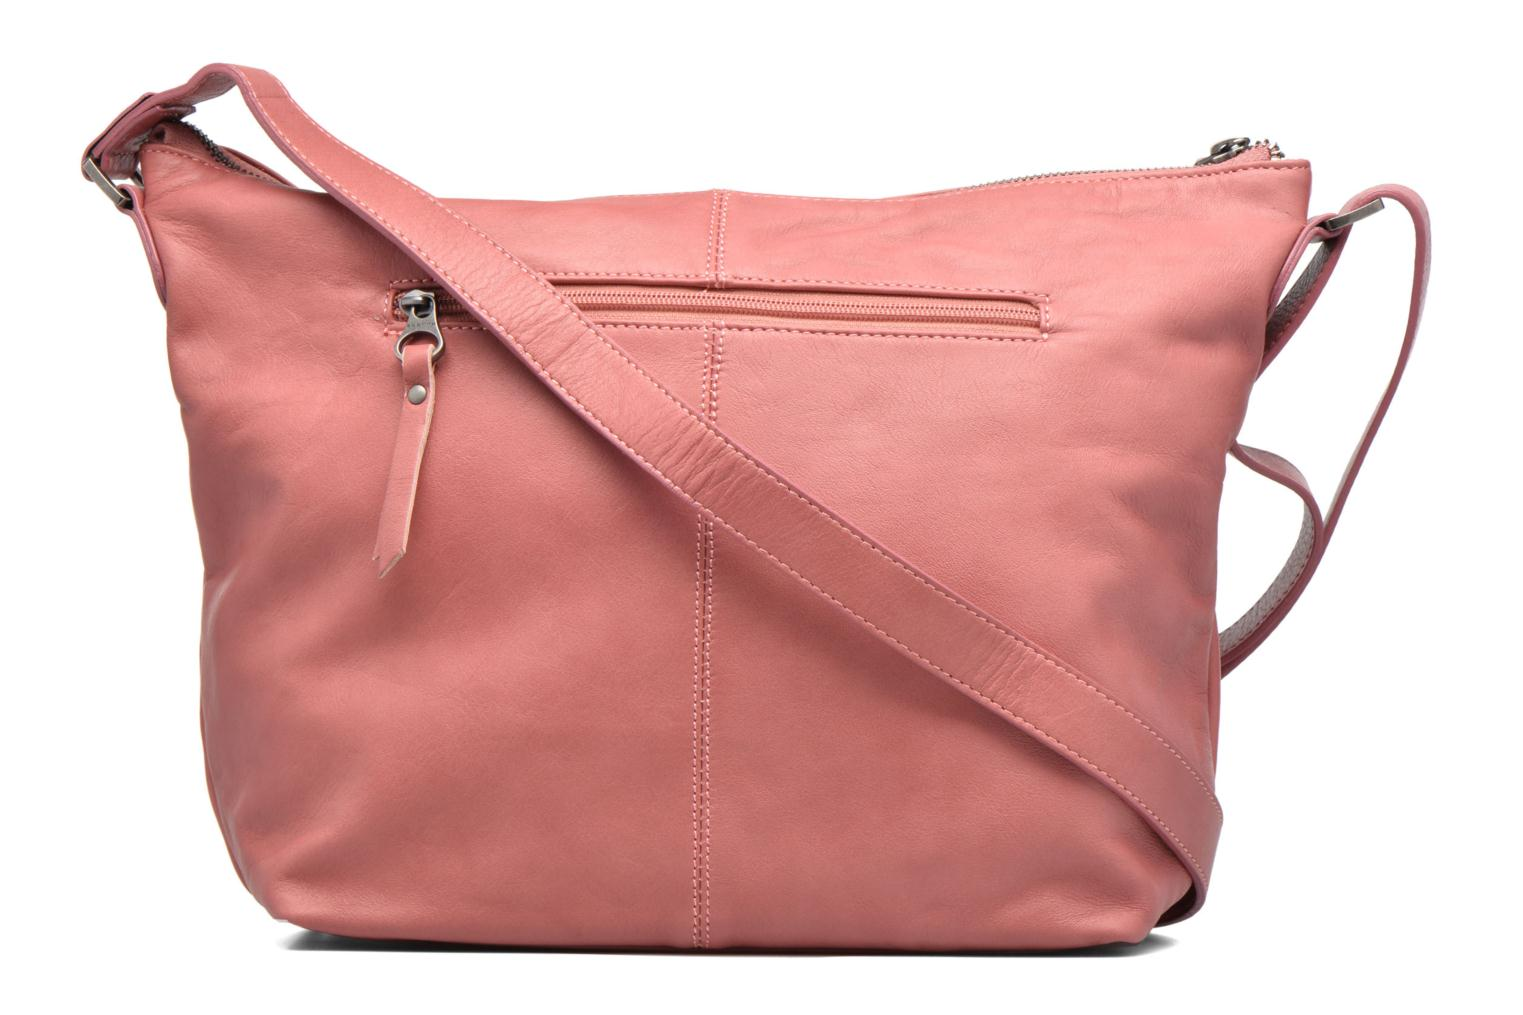 Handbags Sabrina Jeanne Pink front view